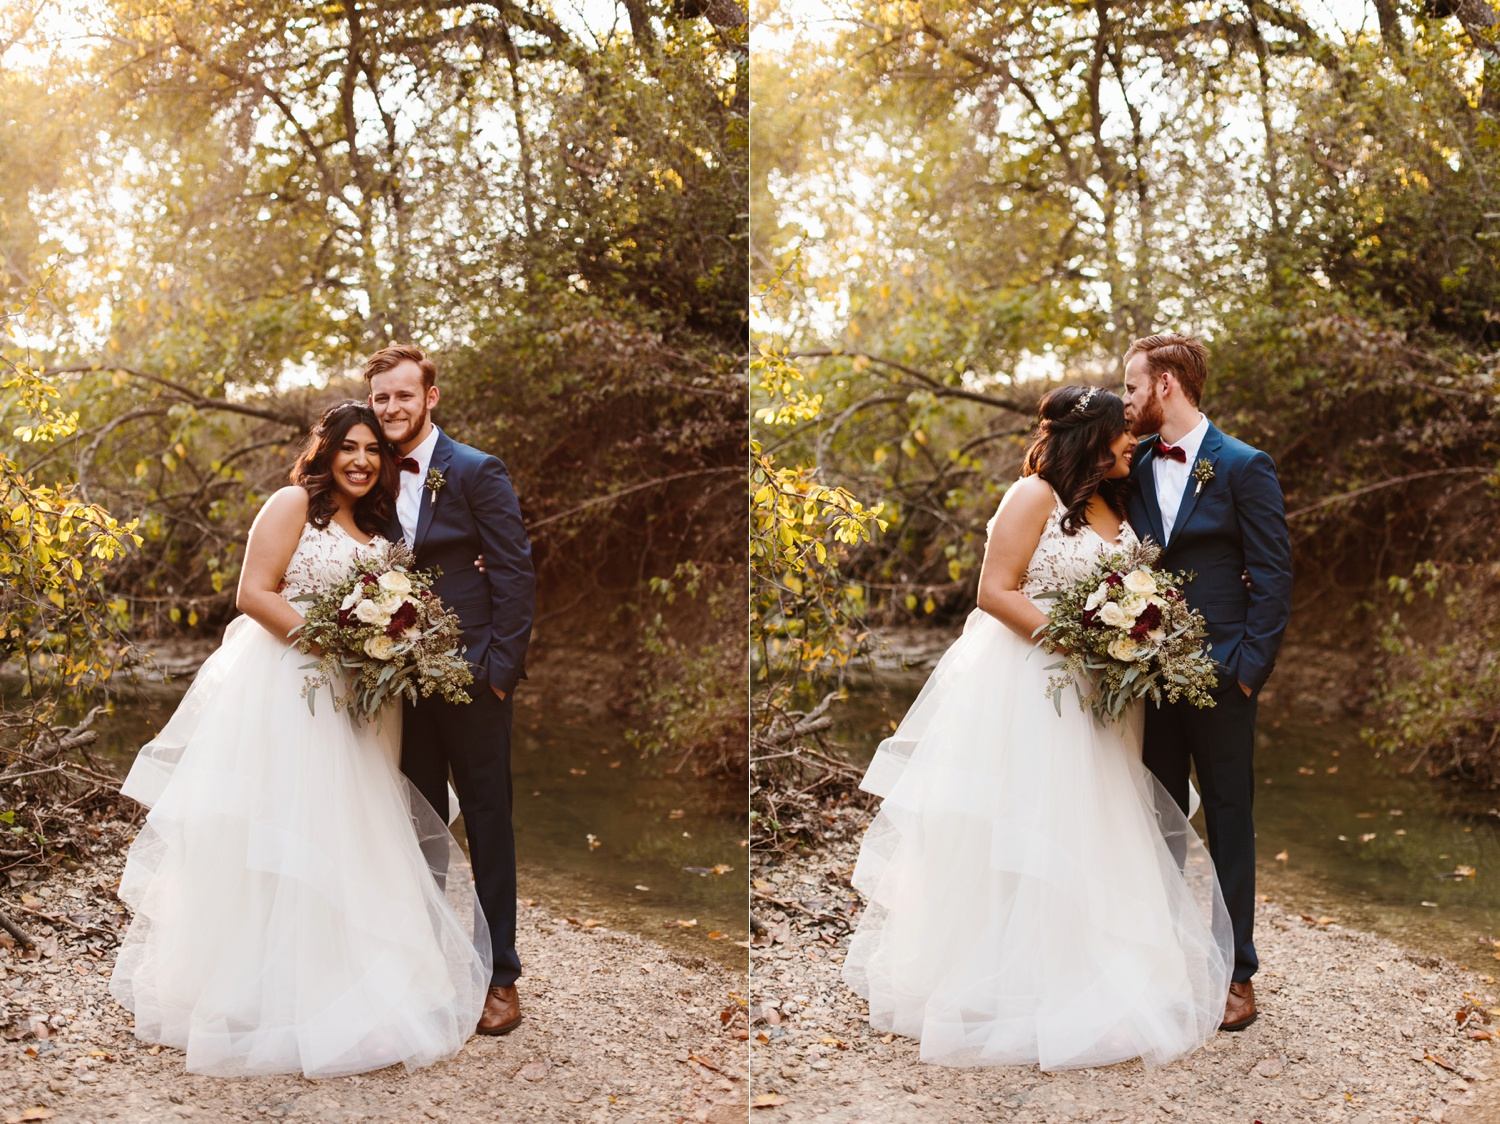 Grant + Lysette | a vibrant, deep burgundy and navy, and mixed metals wedding at Hidden Pines Chapel by North Texas Wedding Photographer Rachel Meagan Photography 208